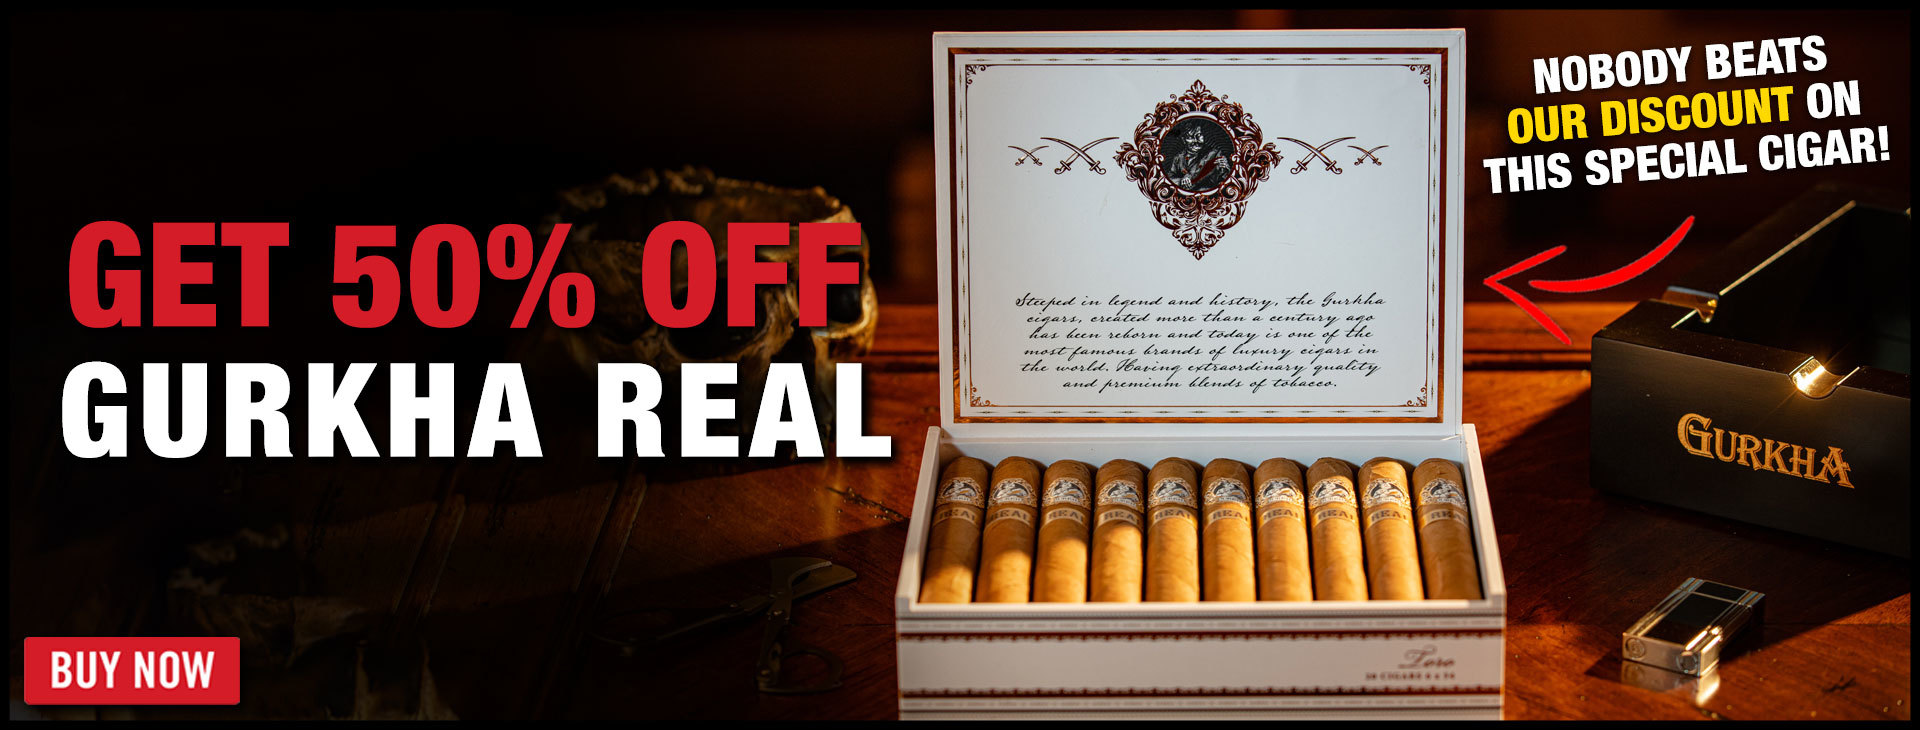 50% OFF: Gurkha Real!